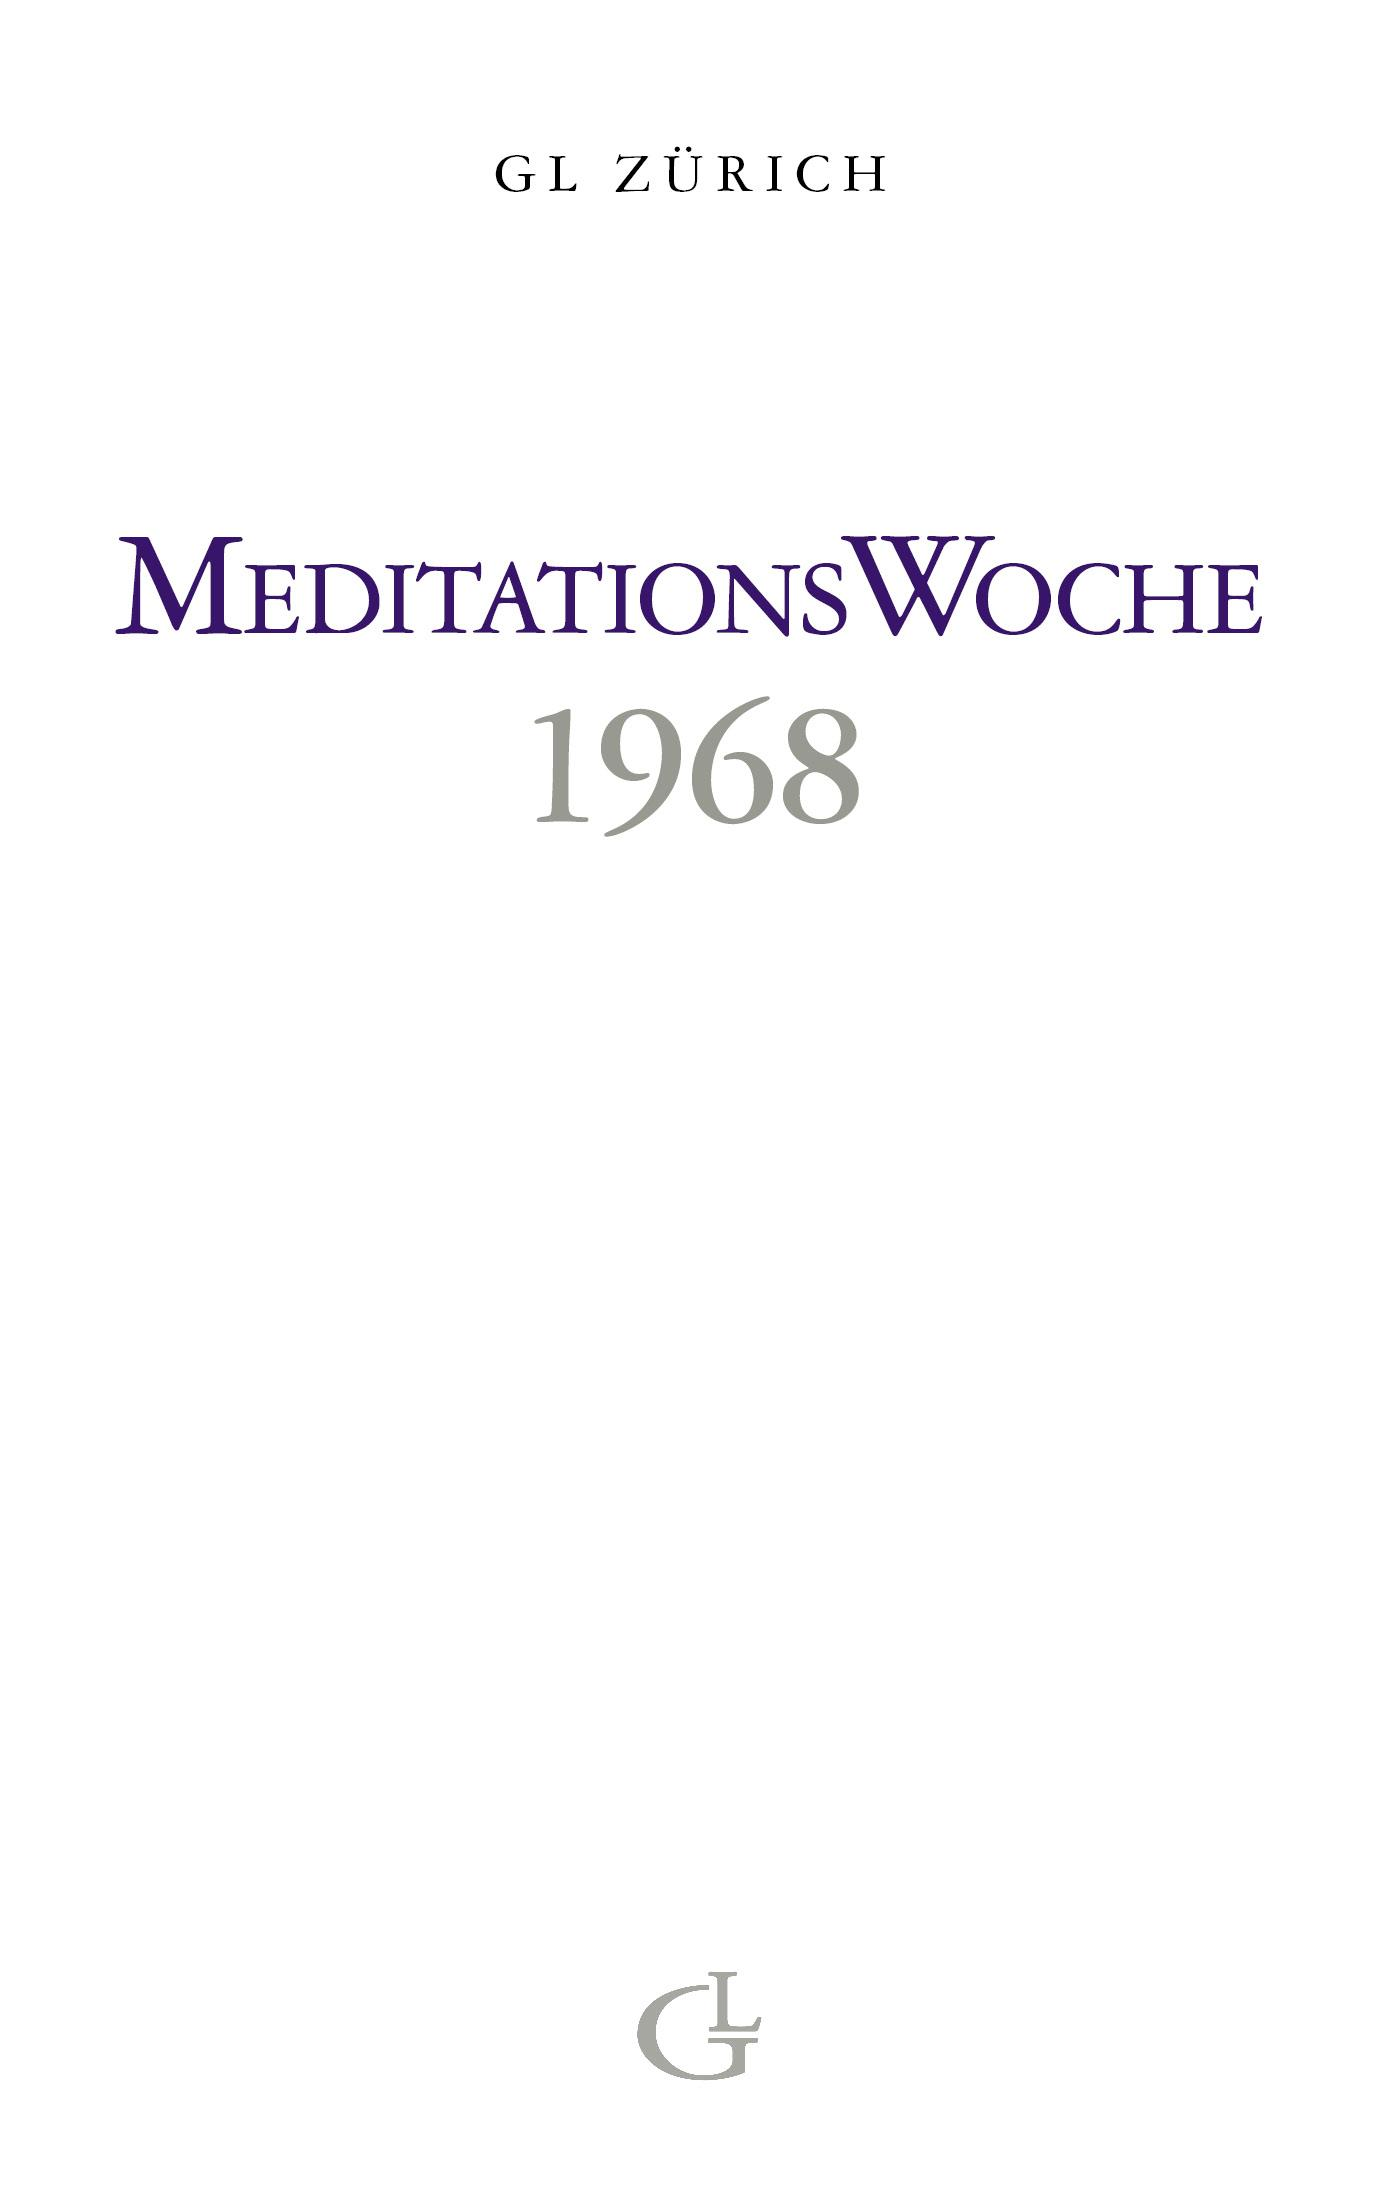 Cover des Buches Meditationswoche 1968 von Medium Beatrice Brunner